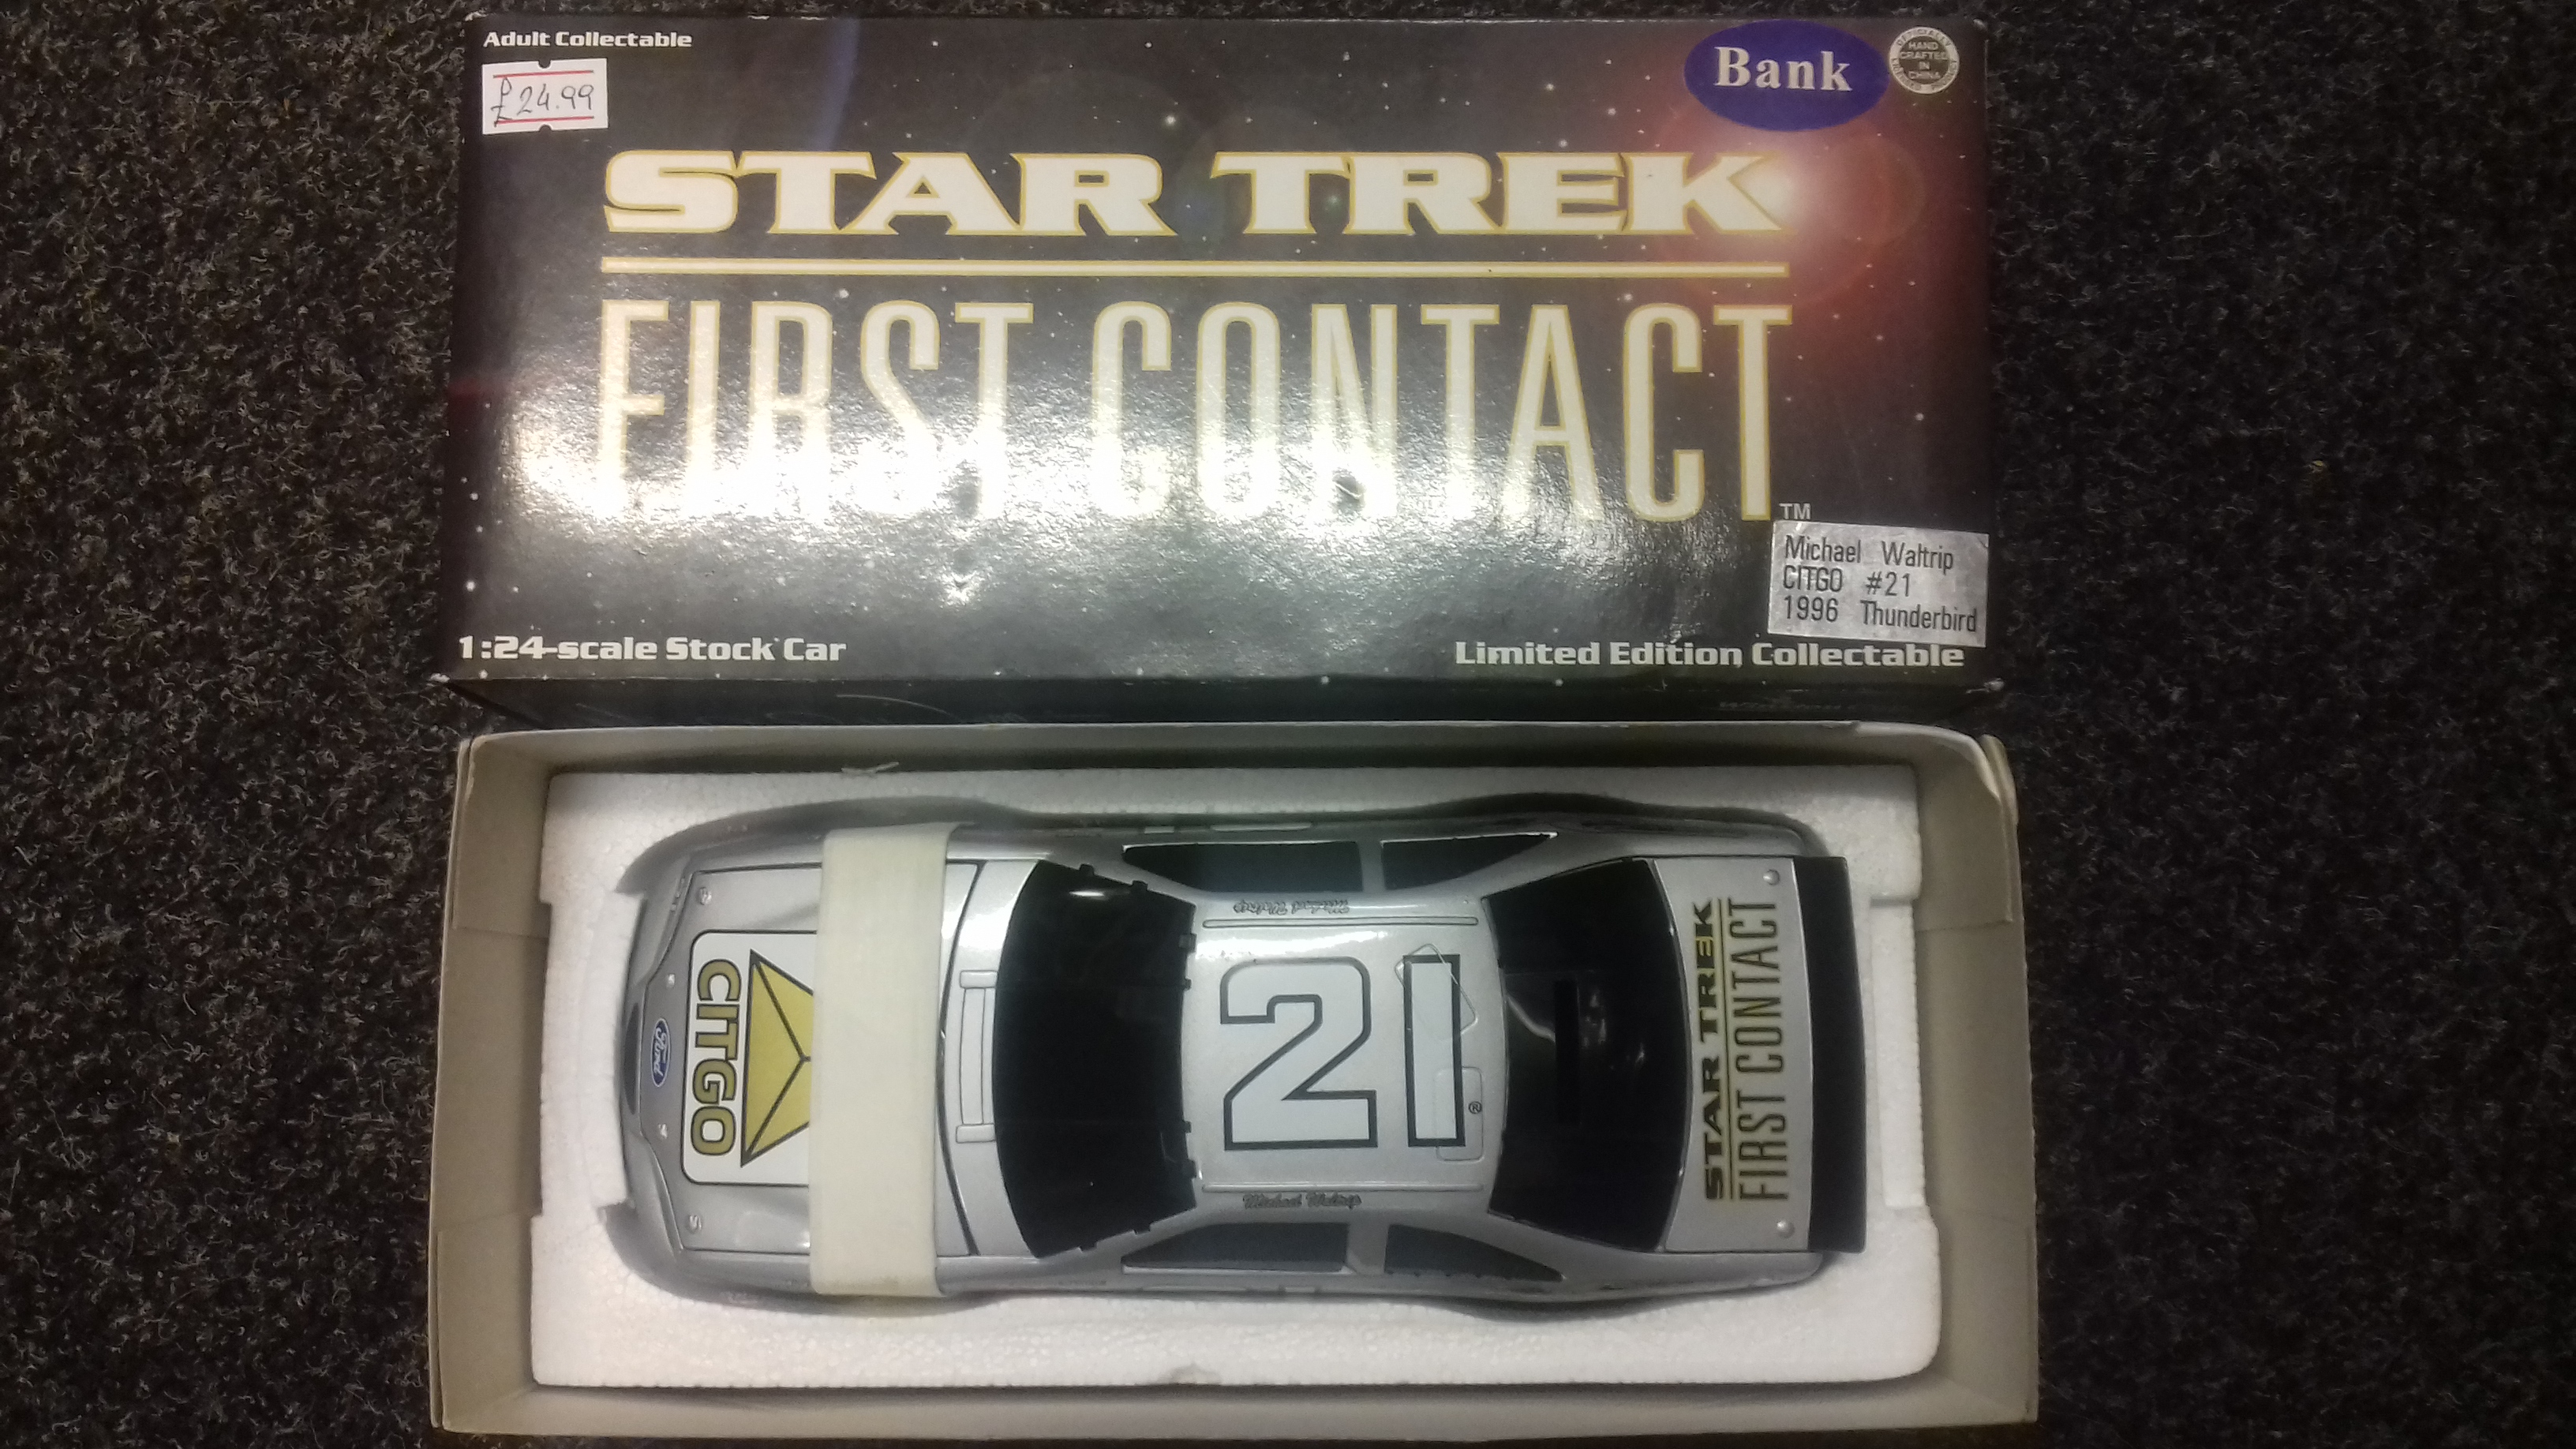 Michael Waltrip 1996 Thunderbird Star Trek First Contact Money Bank